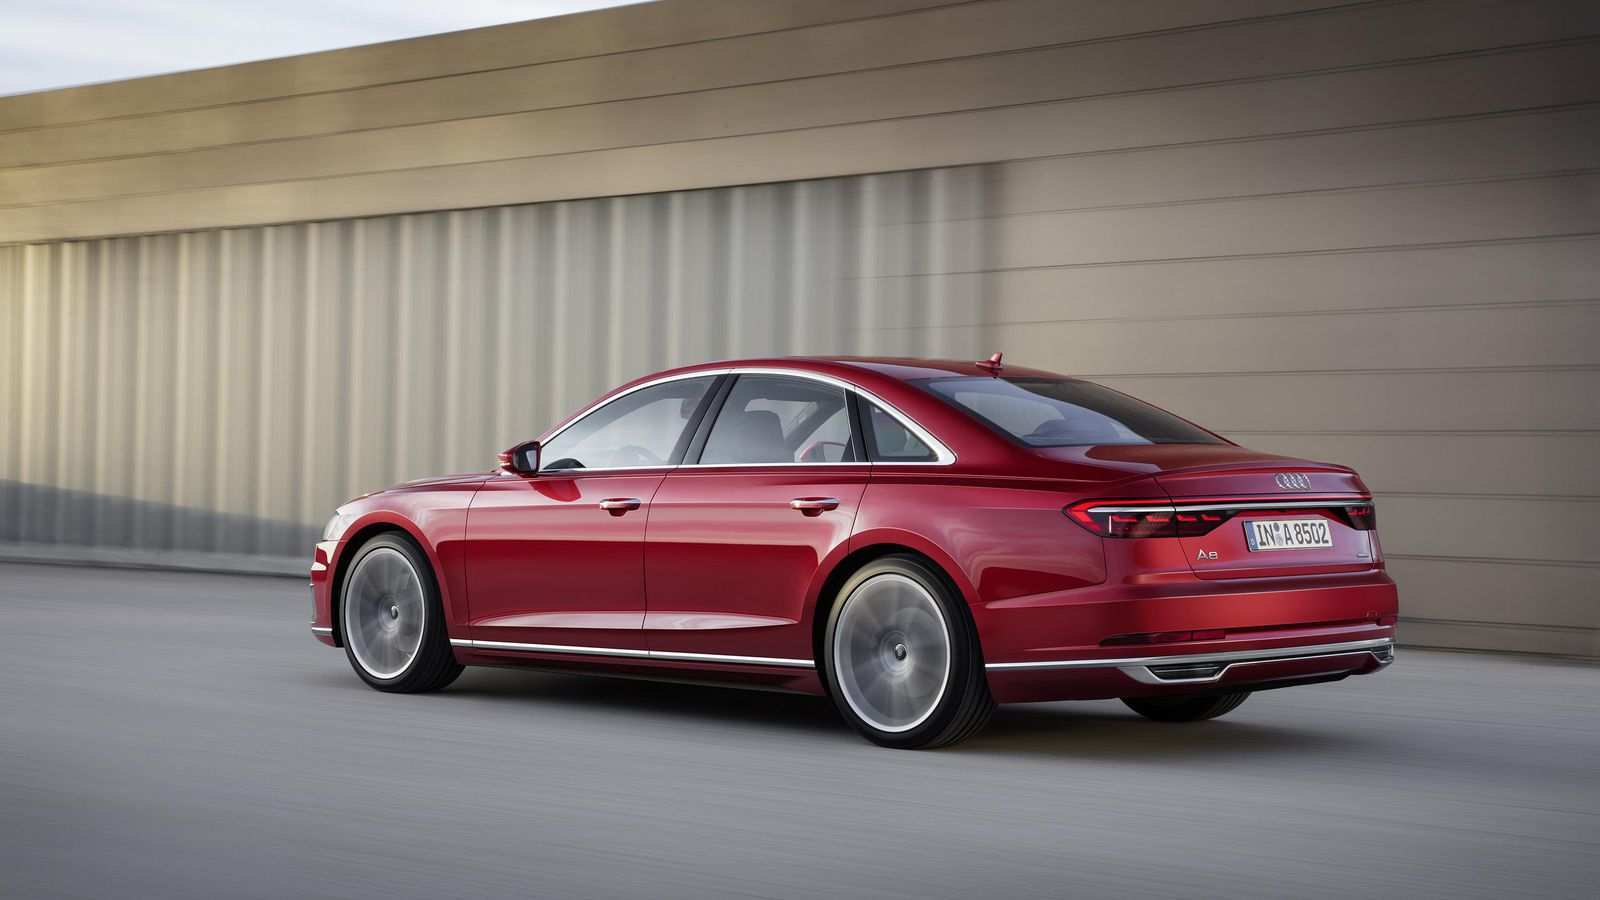 46 All New 2020 Audi A8 L In Usa Configurations